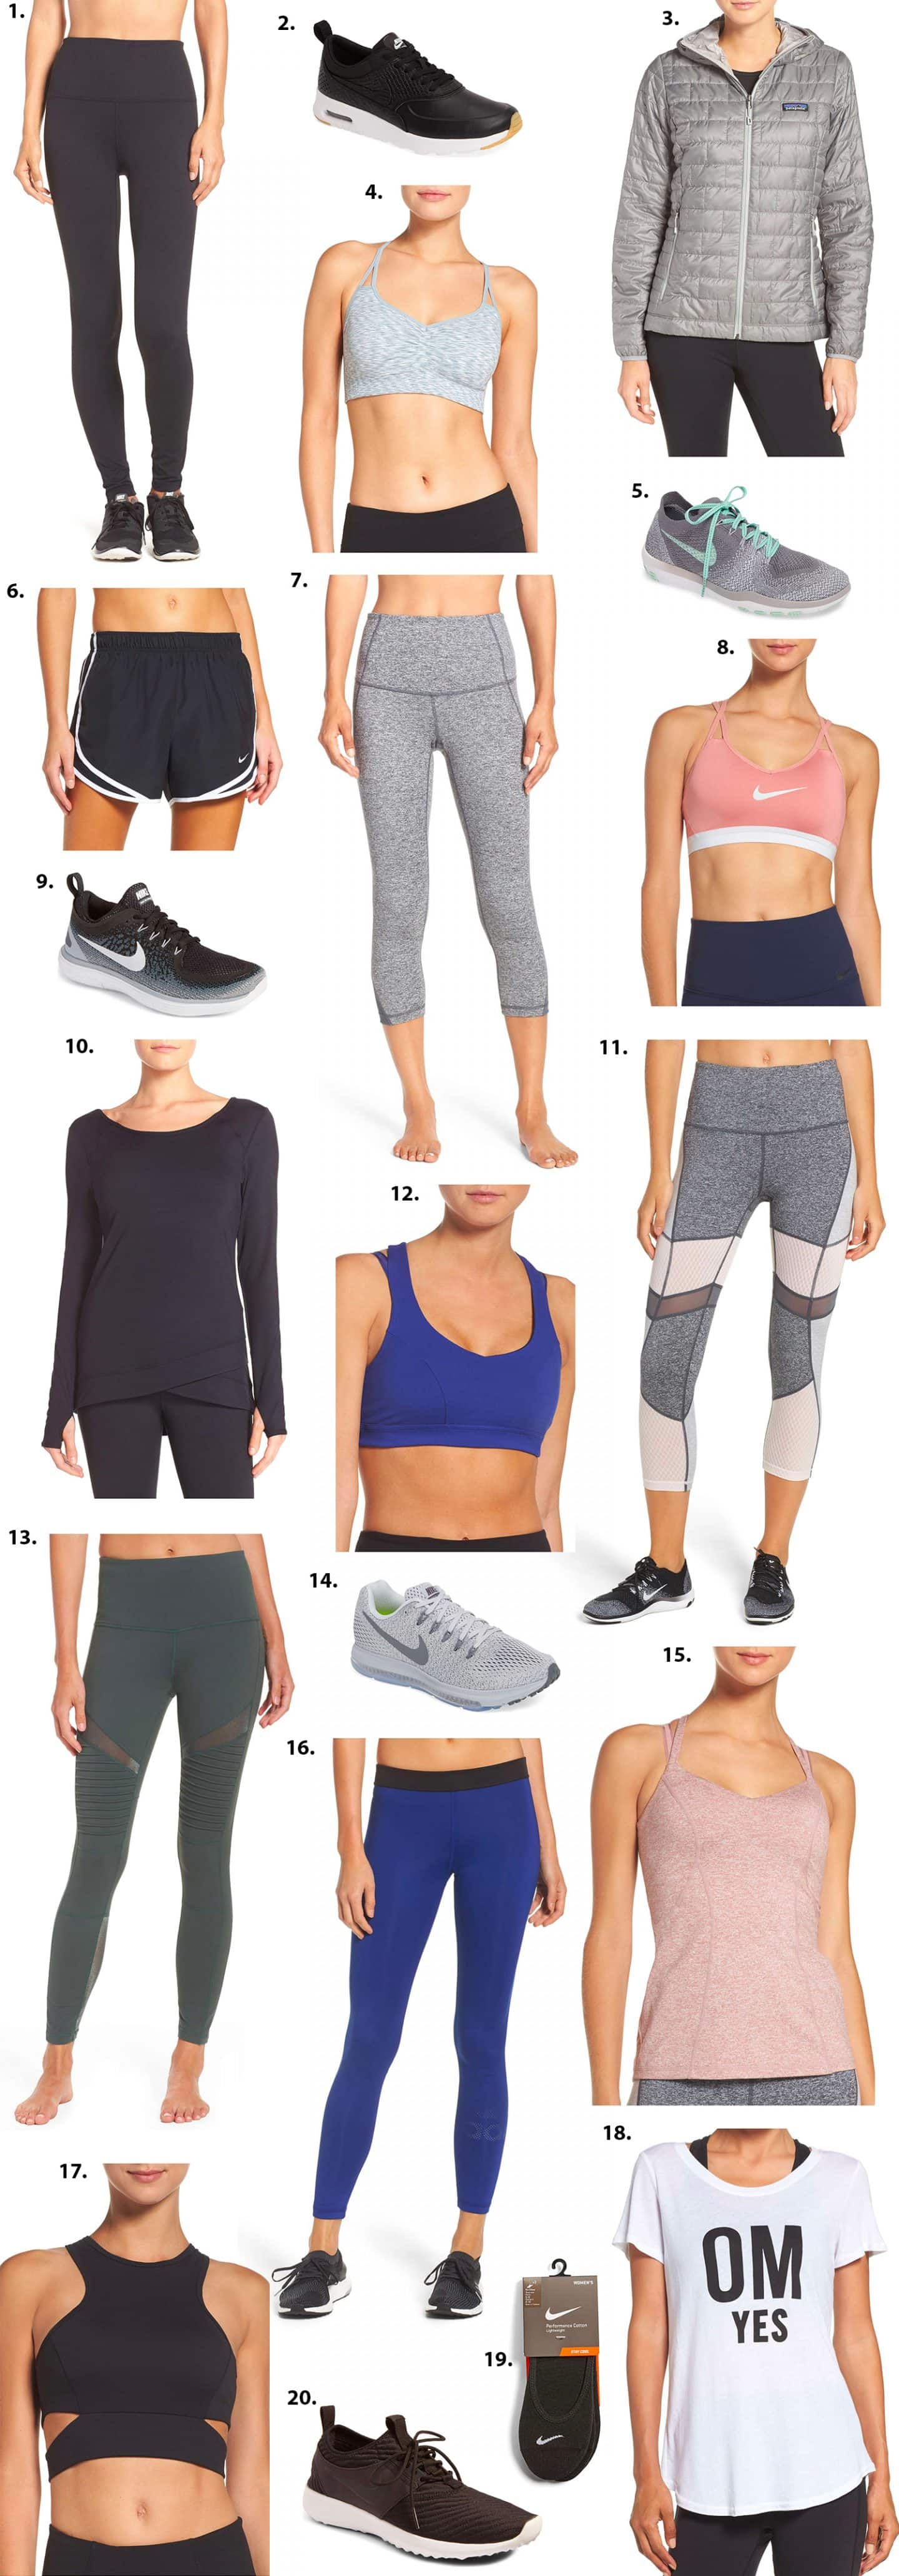 Nordstrom Anniversary Sale Activewear deals fashion Ashley Brooke Nicholas Style Blogger